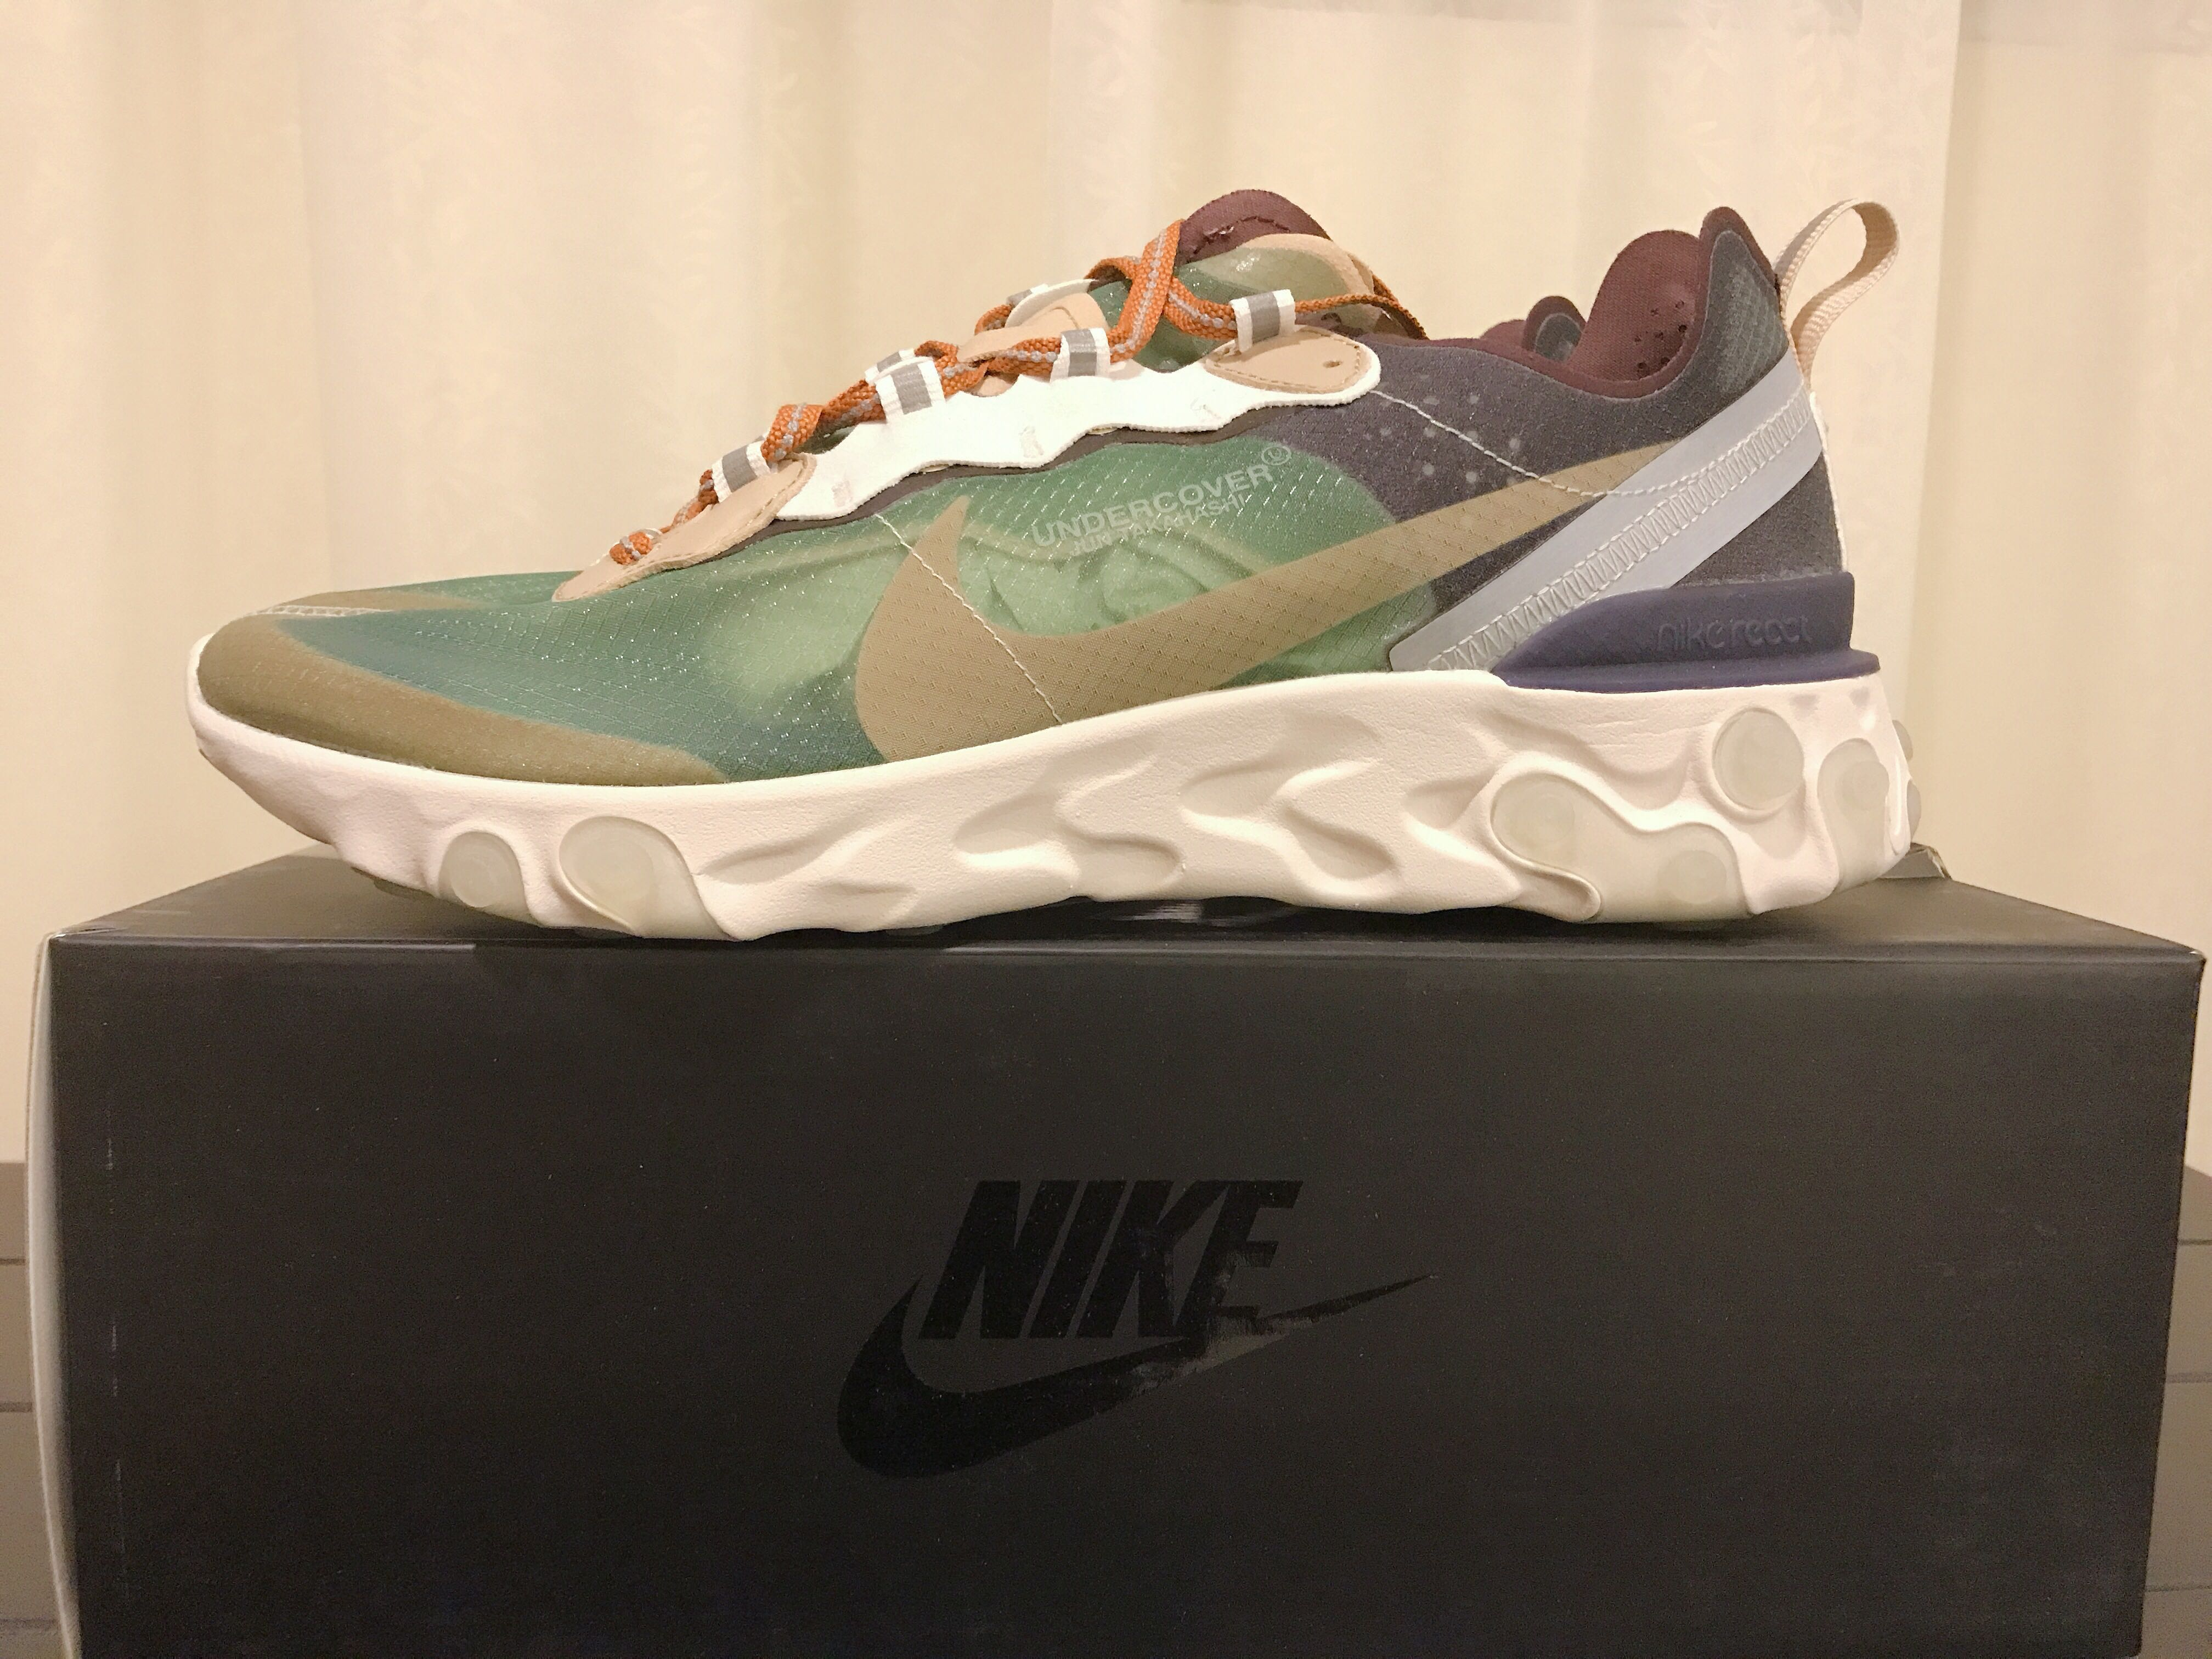 b84af10bc8ed Undercover x Nike React Element 87 Green Mist